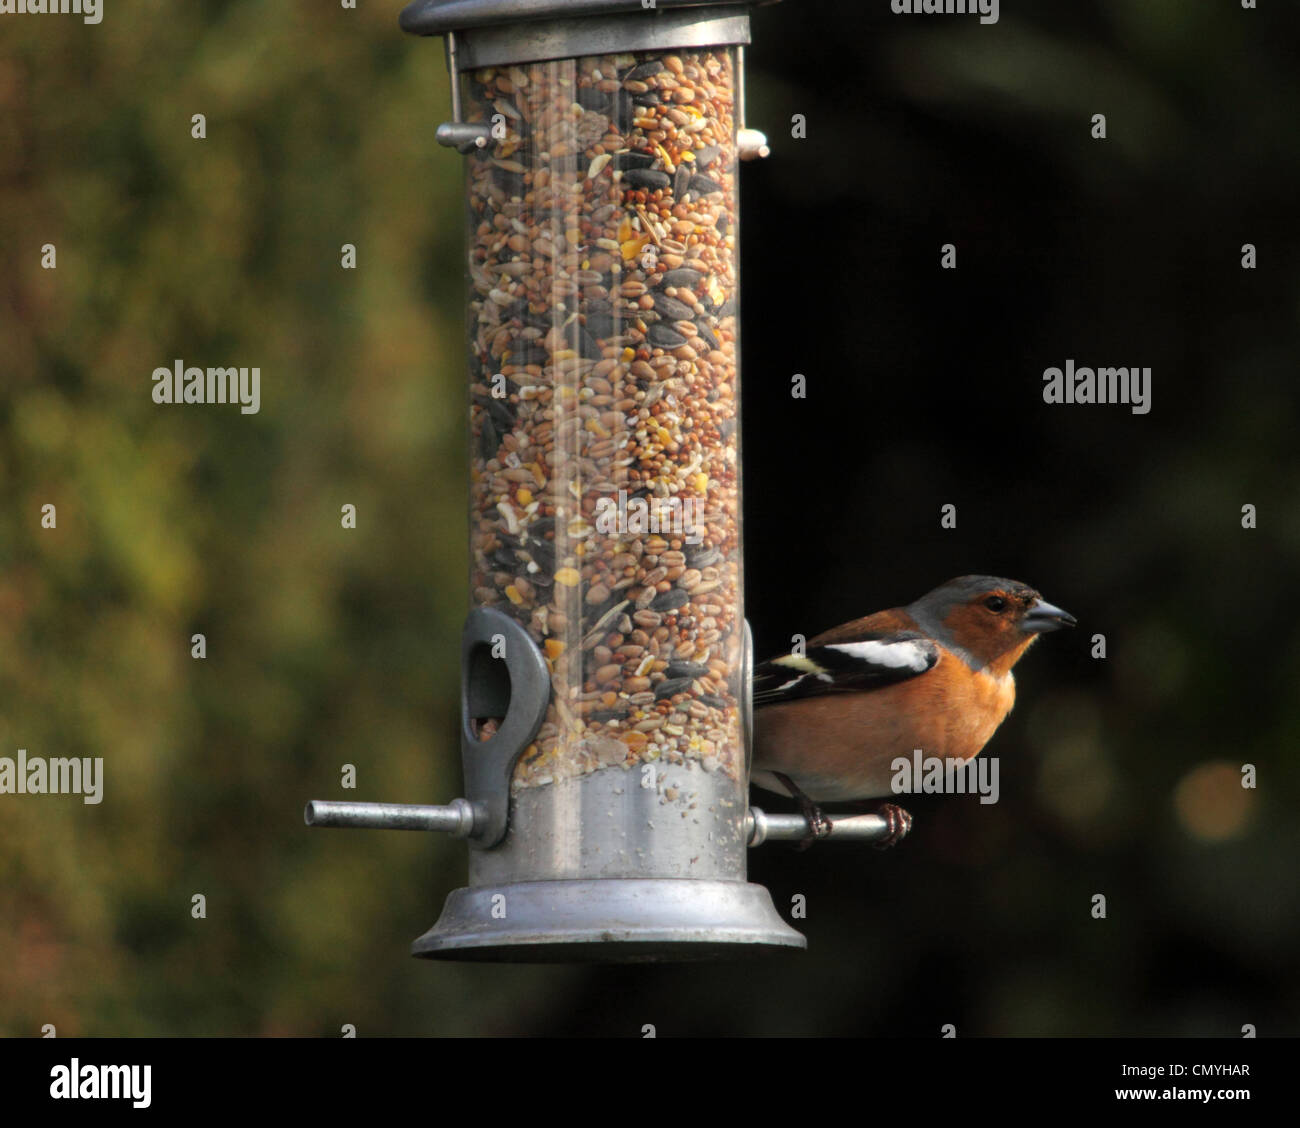 Chaffinch Fringilla coelebs. British garden bird on a seed feeder - Stock Image